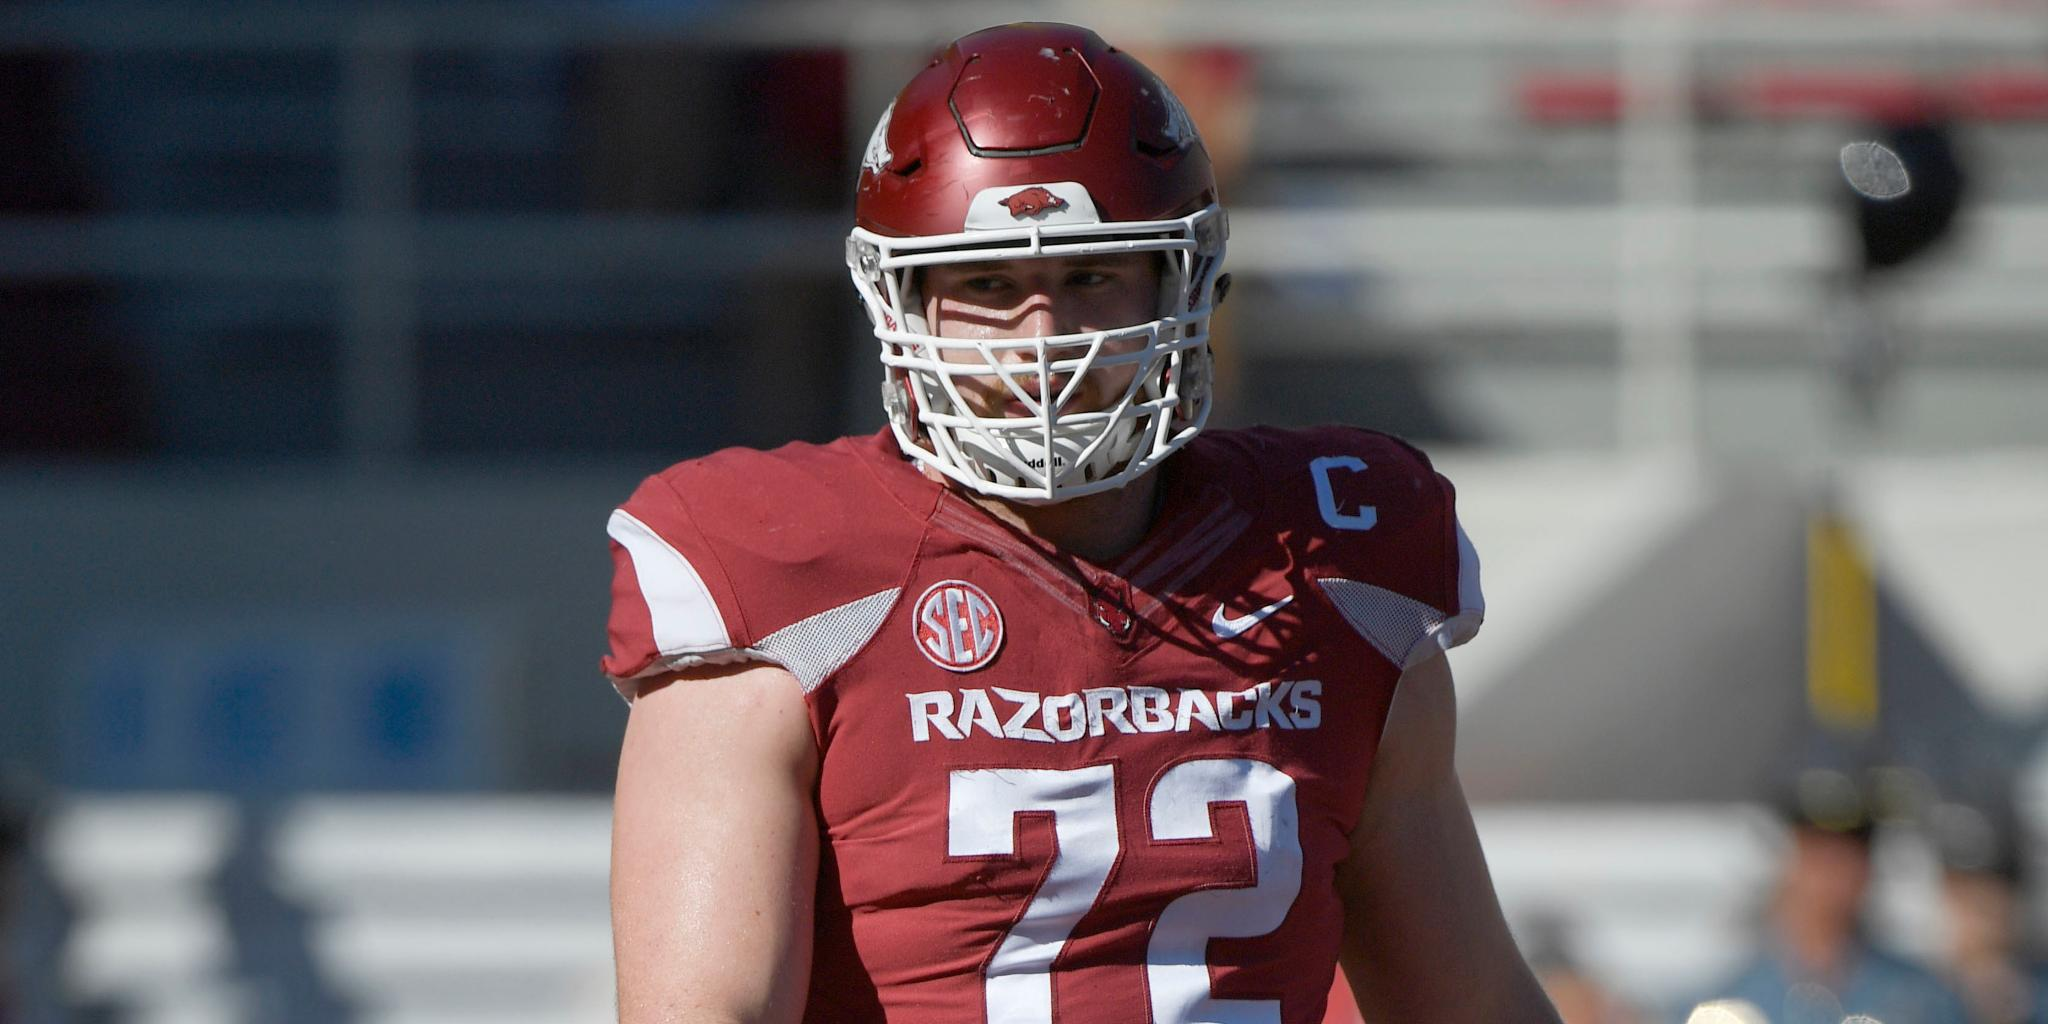 .@Lions sign first-rounder Frank Ragnow (@KNARFWONGAR) to rookie deal: https://t.co/2egiZcsdUs ` https://t.co/TojvCgL3wt